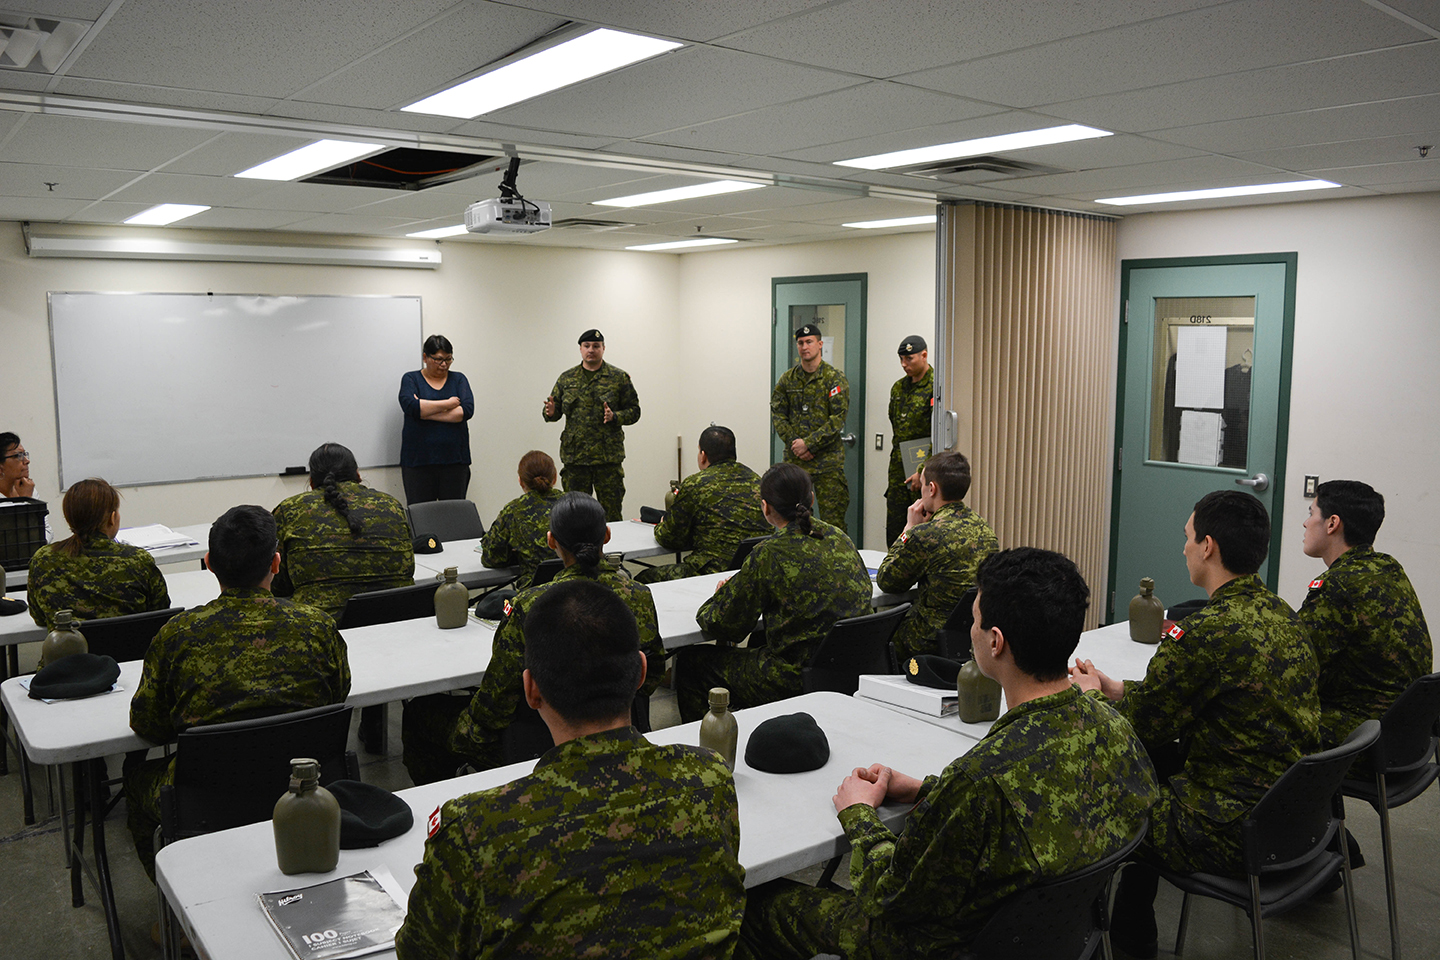 Students from Beardy's and Okemasis First Nation attend classroom instruction during the Basic Military Qualification Co-op Program at Hugh Cairns VC Armoury, on April 6, 2017.